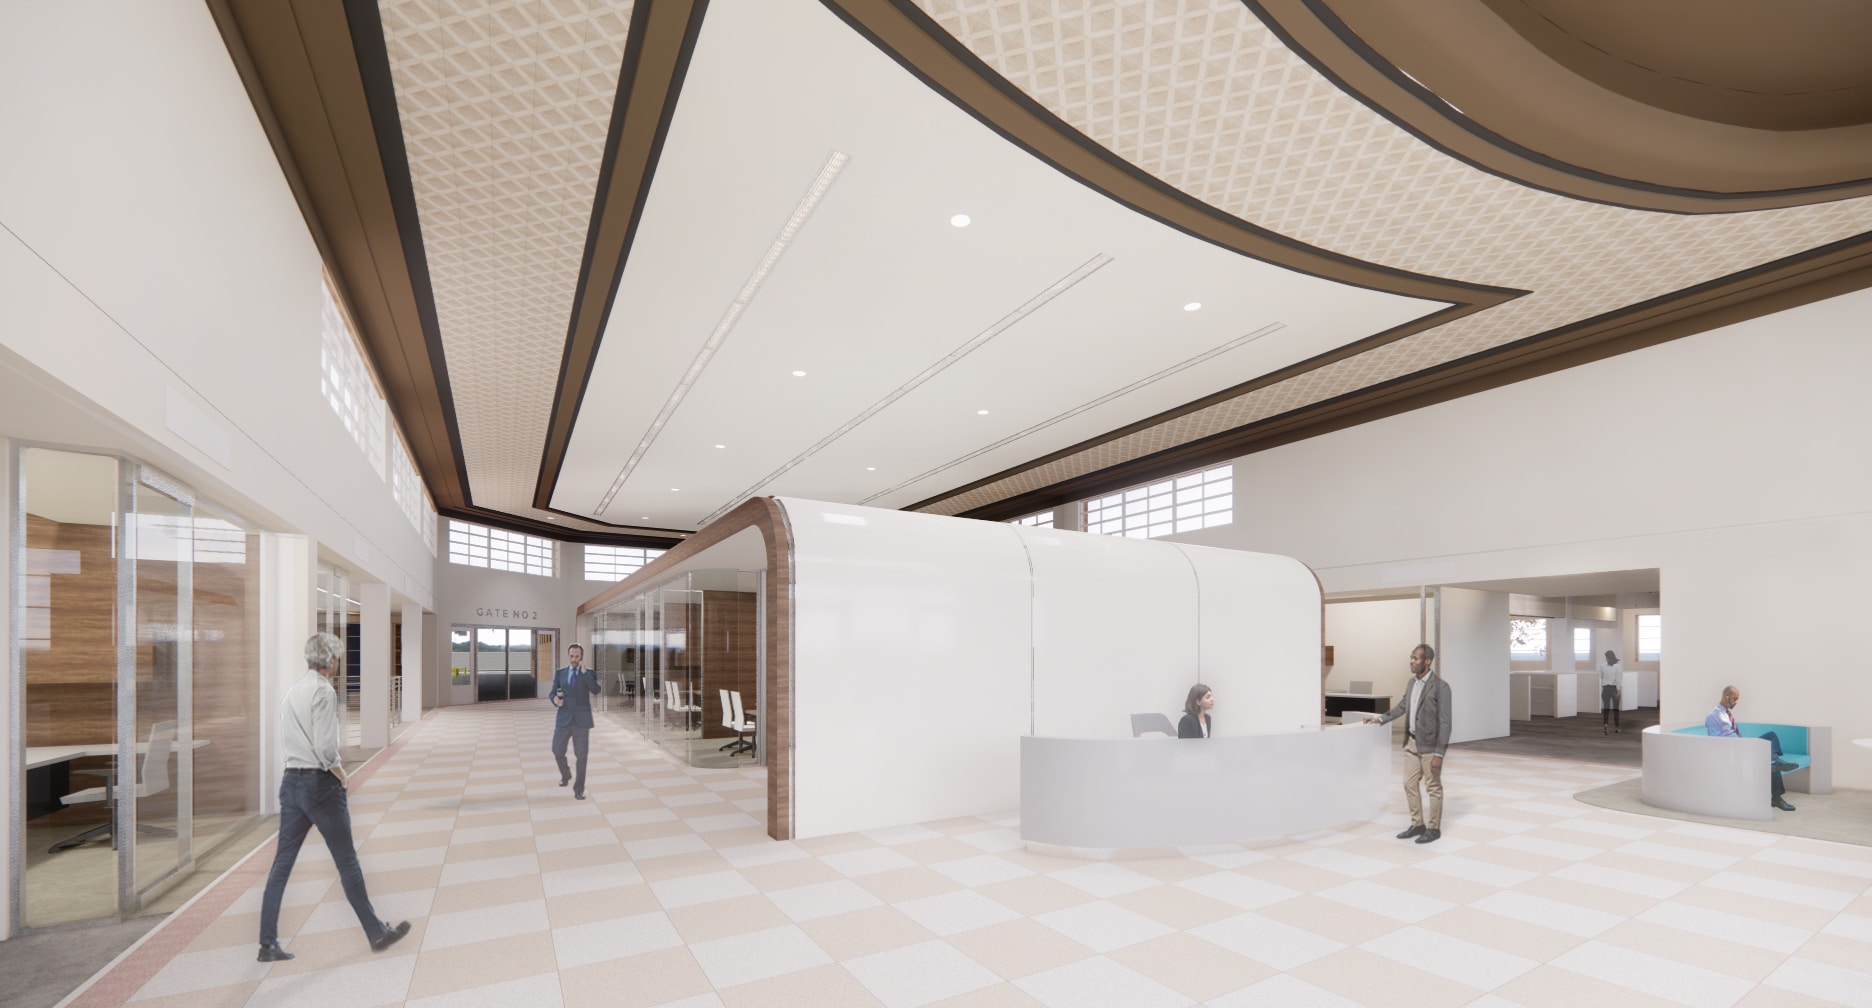 Rendering for the Greyhound lobby